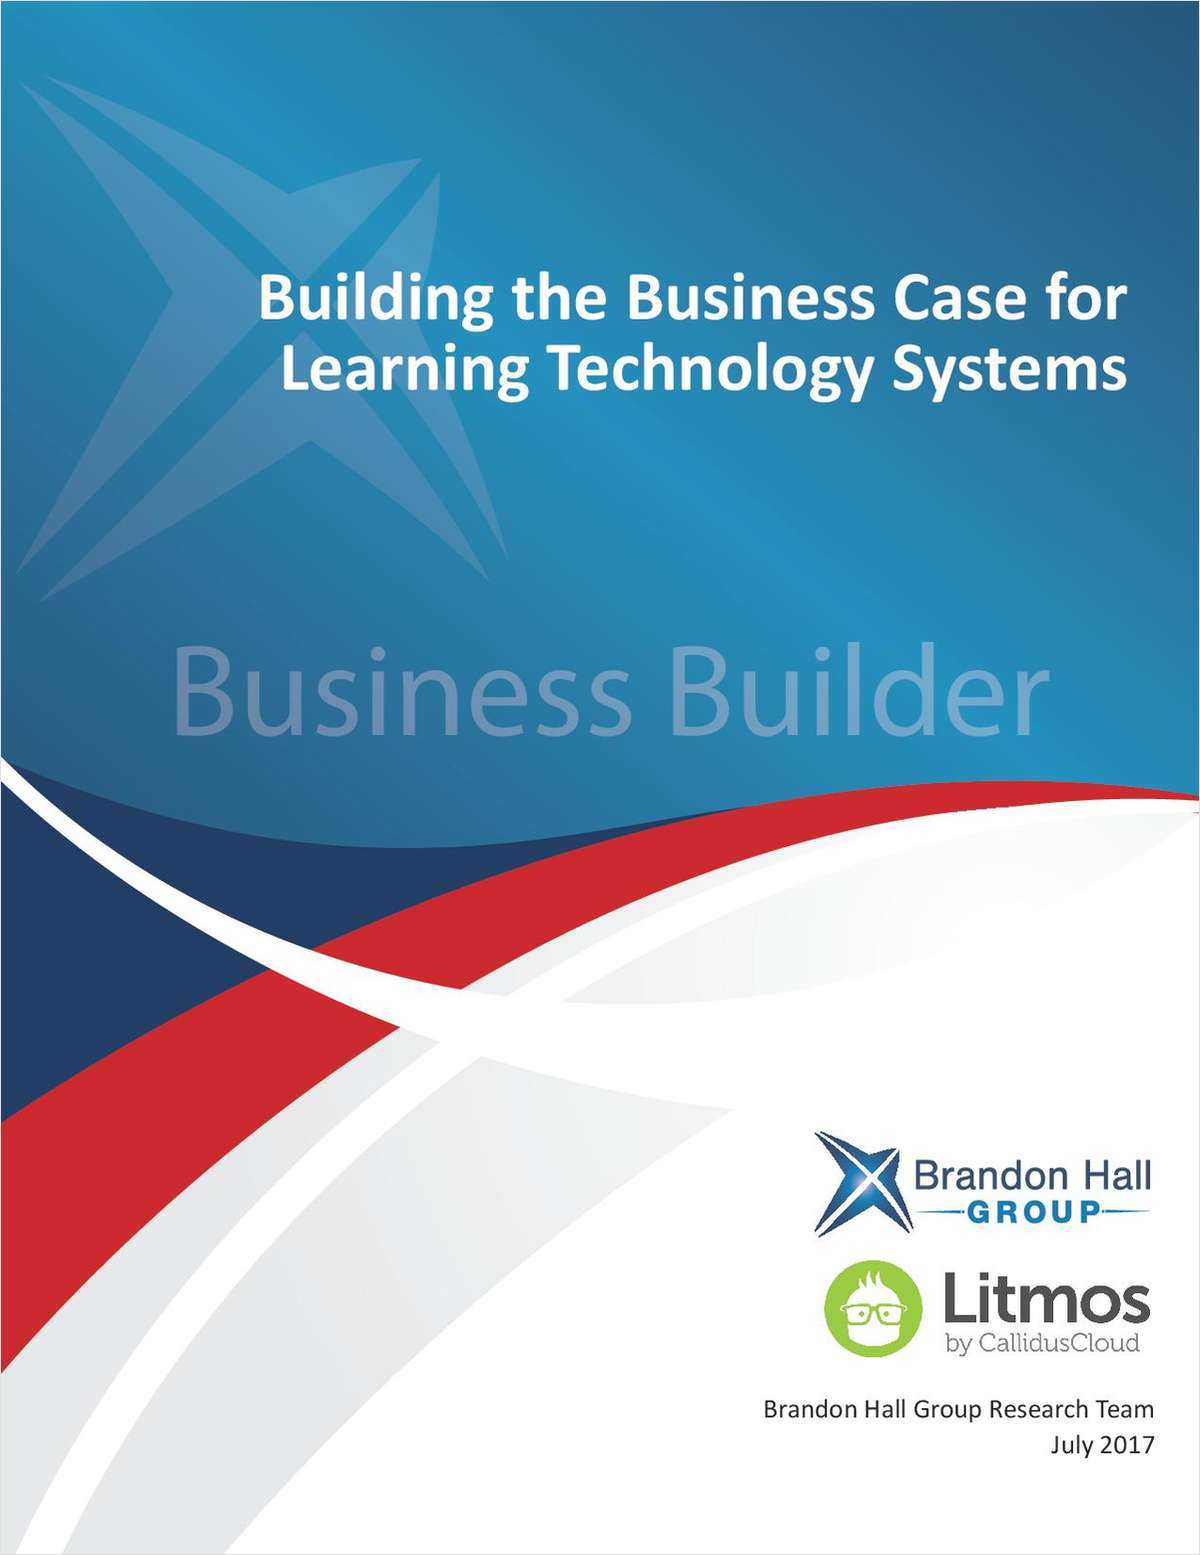 Building the Business Case for Learning Technology Systems